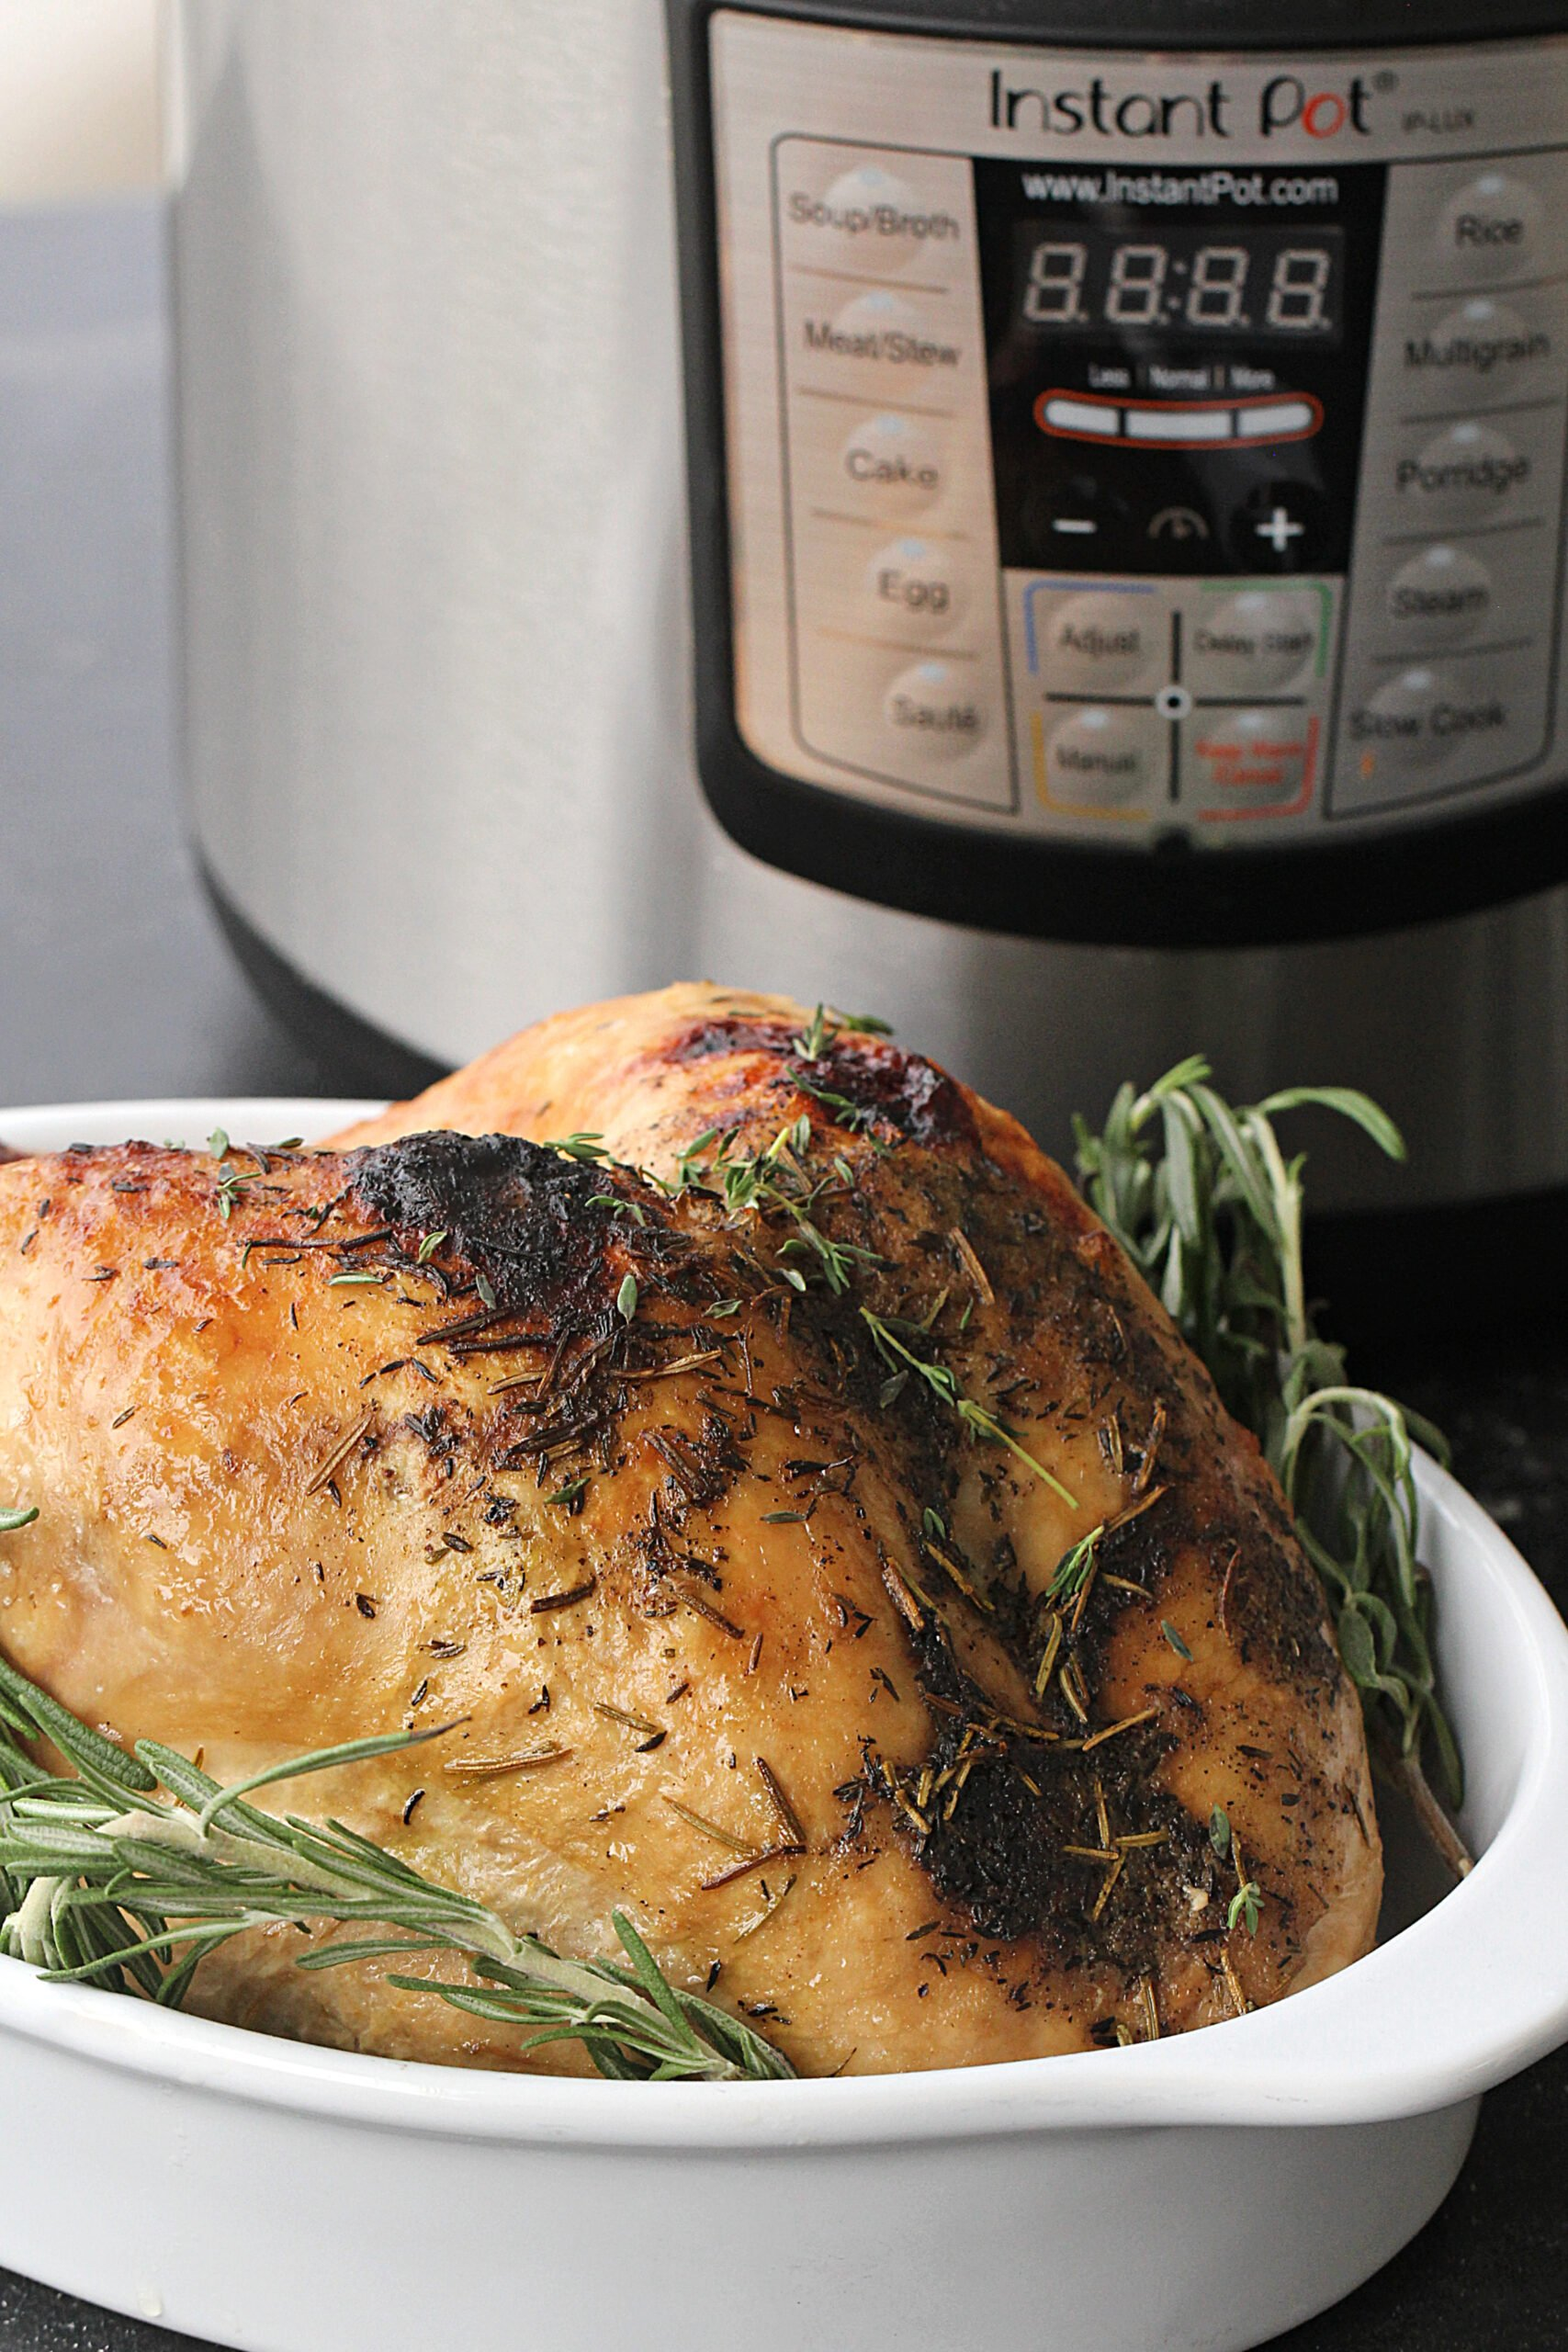 How to cook a turkey from frozen in the Instant Pot